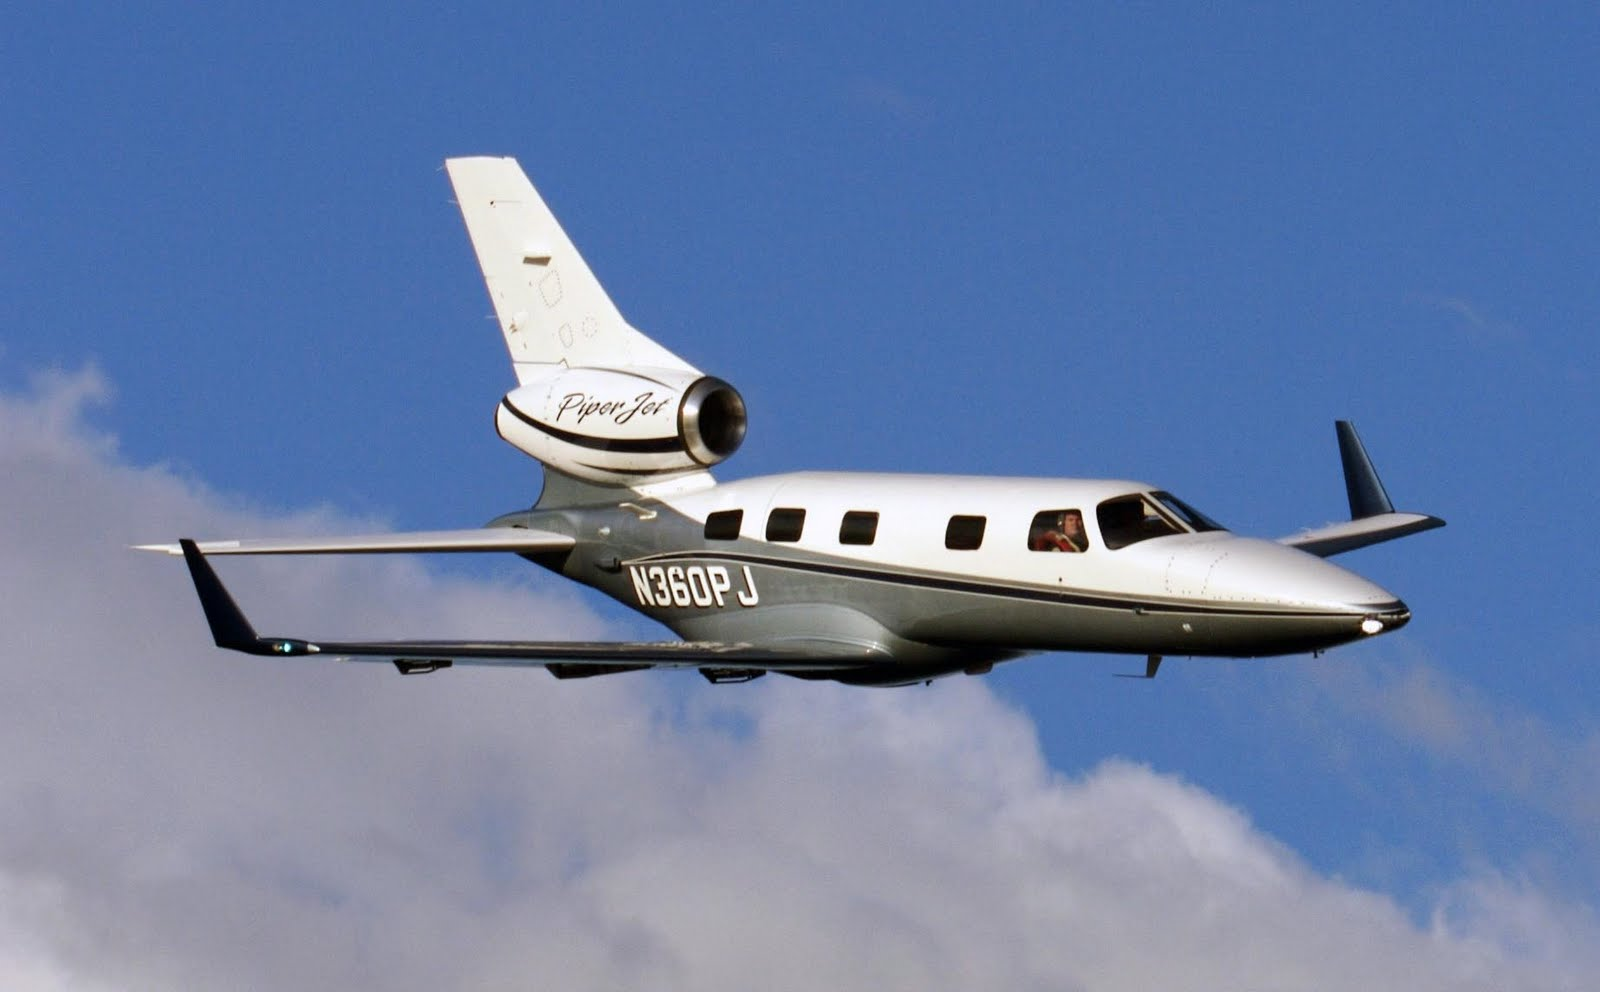 The piperjet was announced in oc